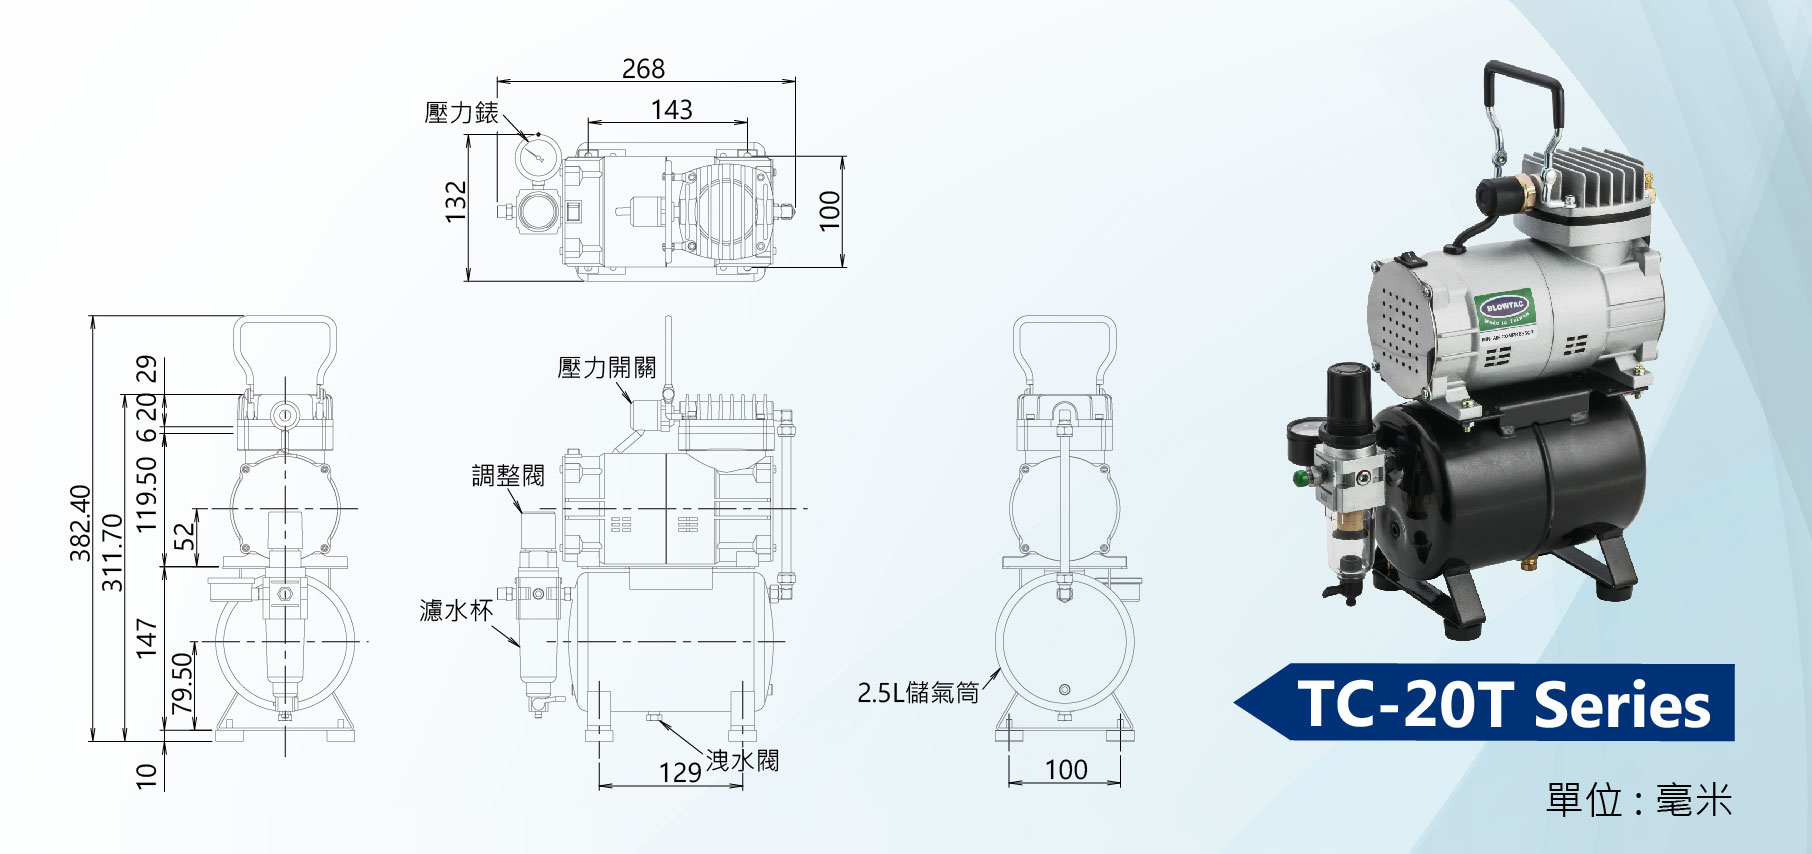 TC-20T Series Mini Air Compressors Dimension